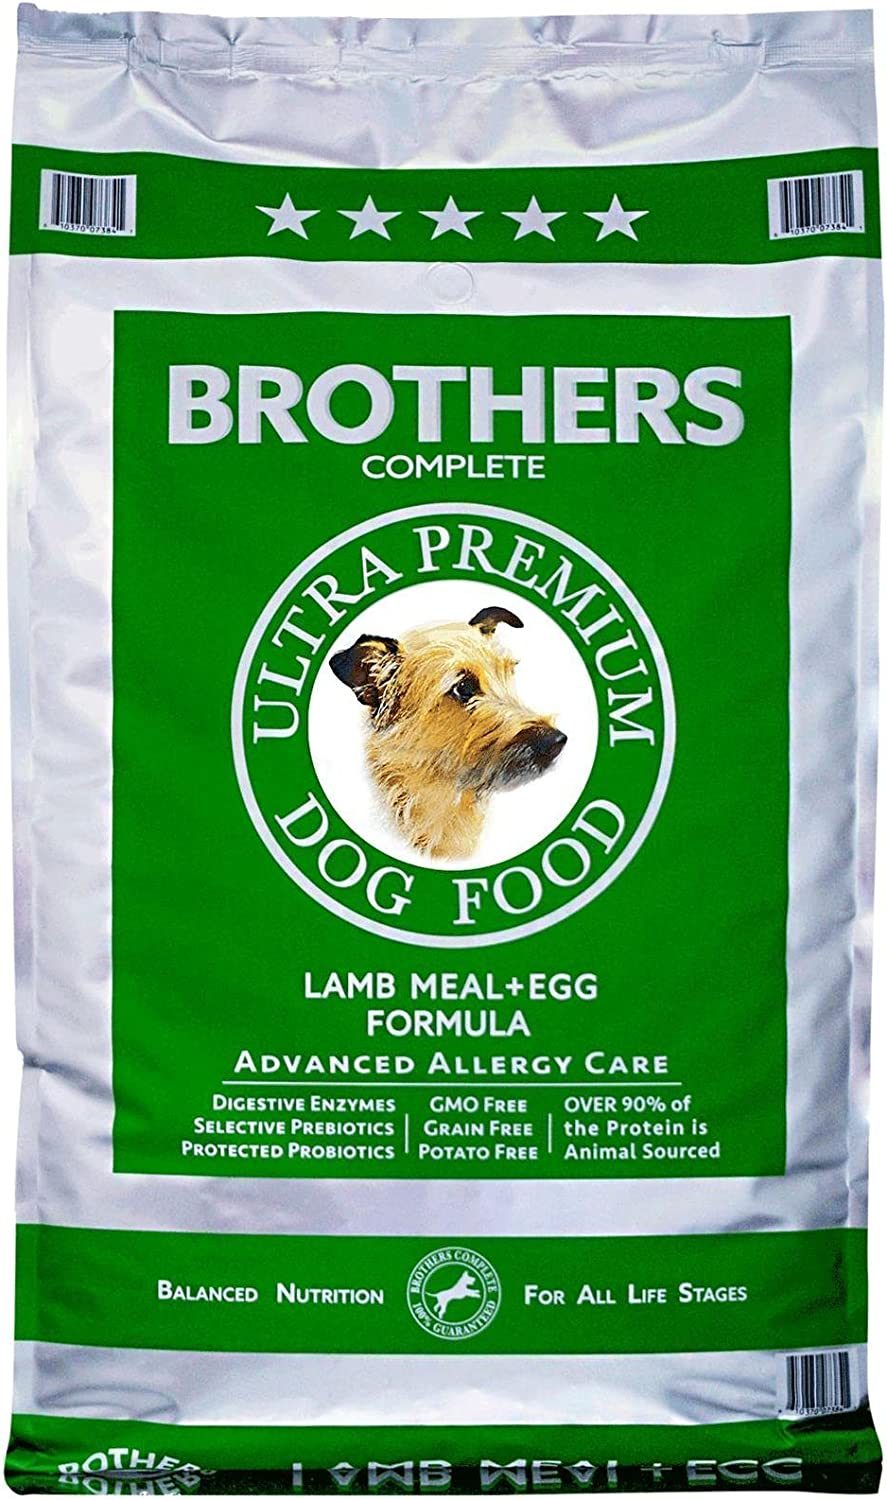 Brothers Complete Lamb Meal & Egg Allergy Care